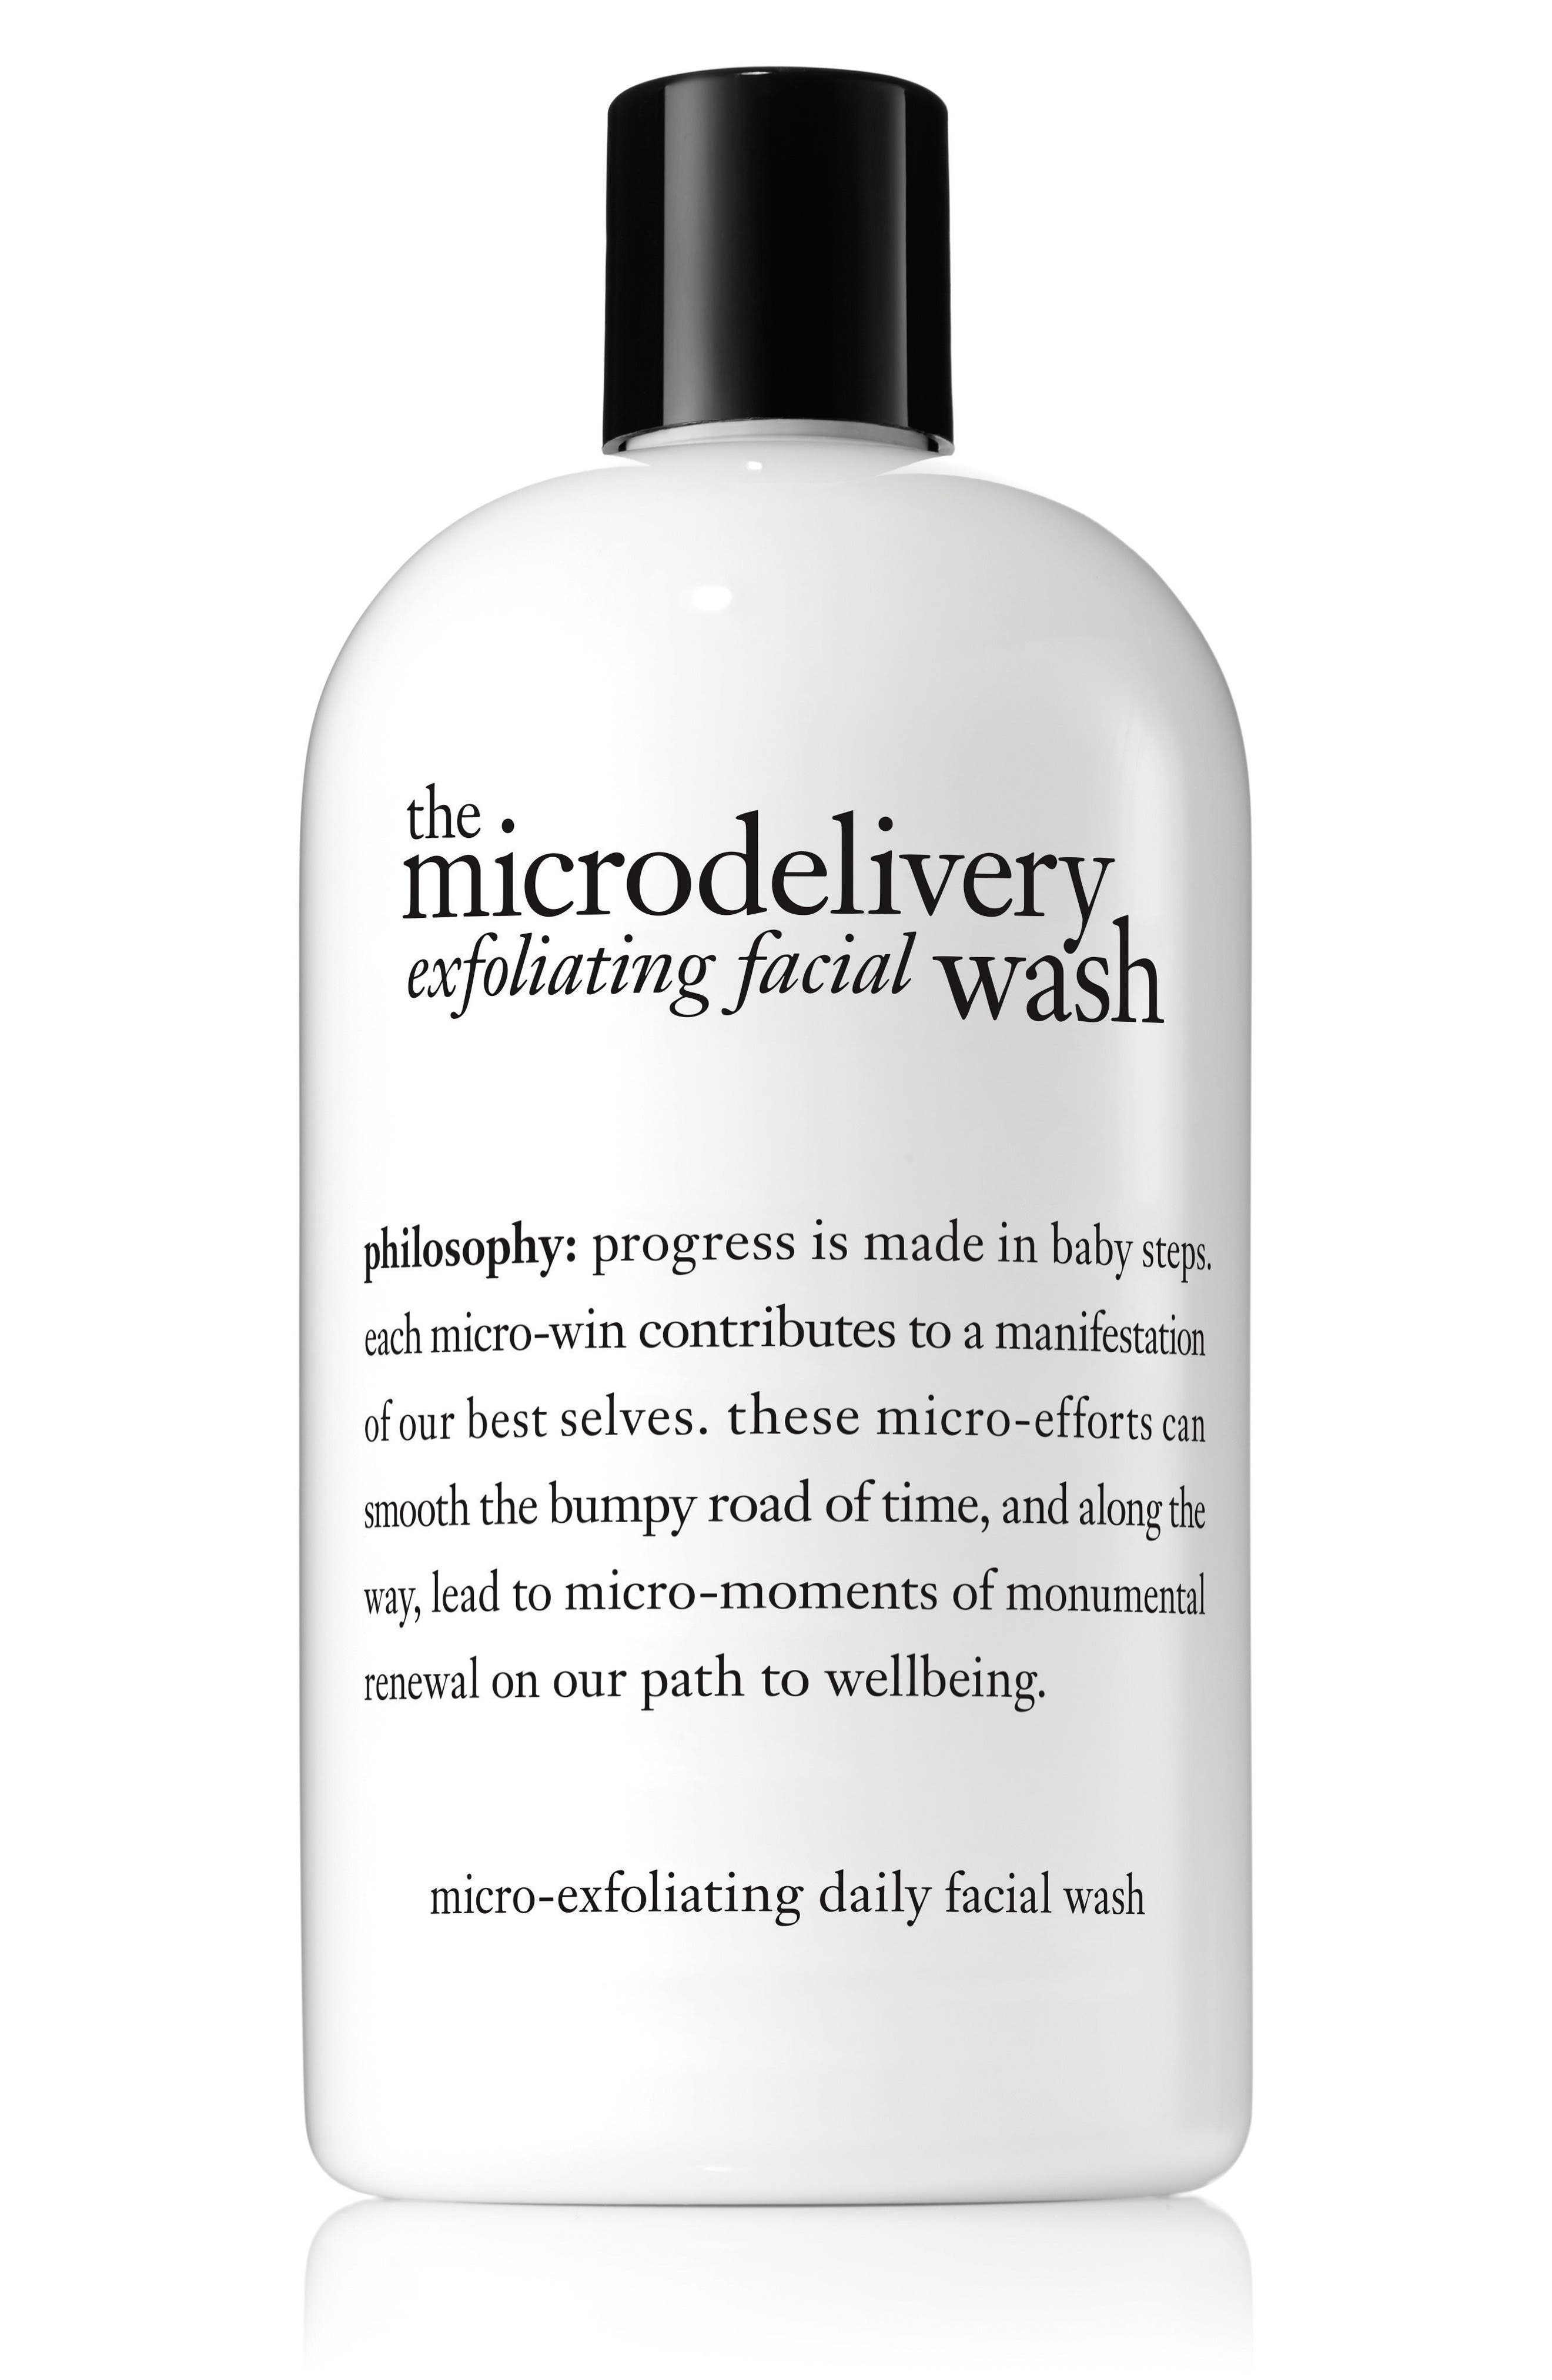 Alternate Image 1 Selected - philosophy the microdelivery exfoliating facial wash